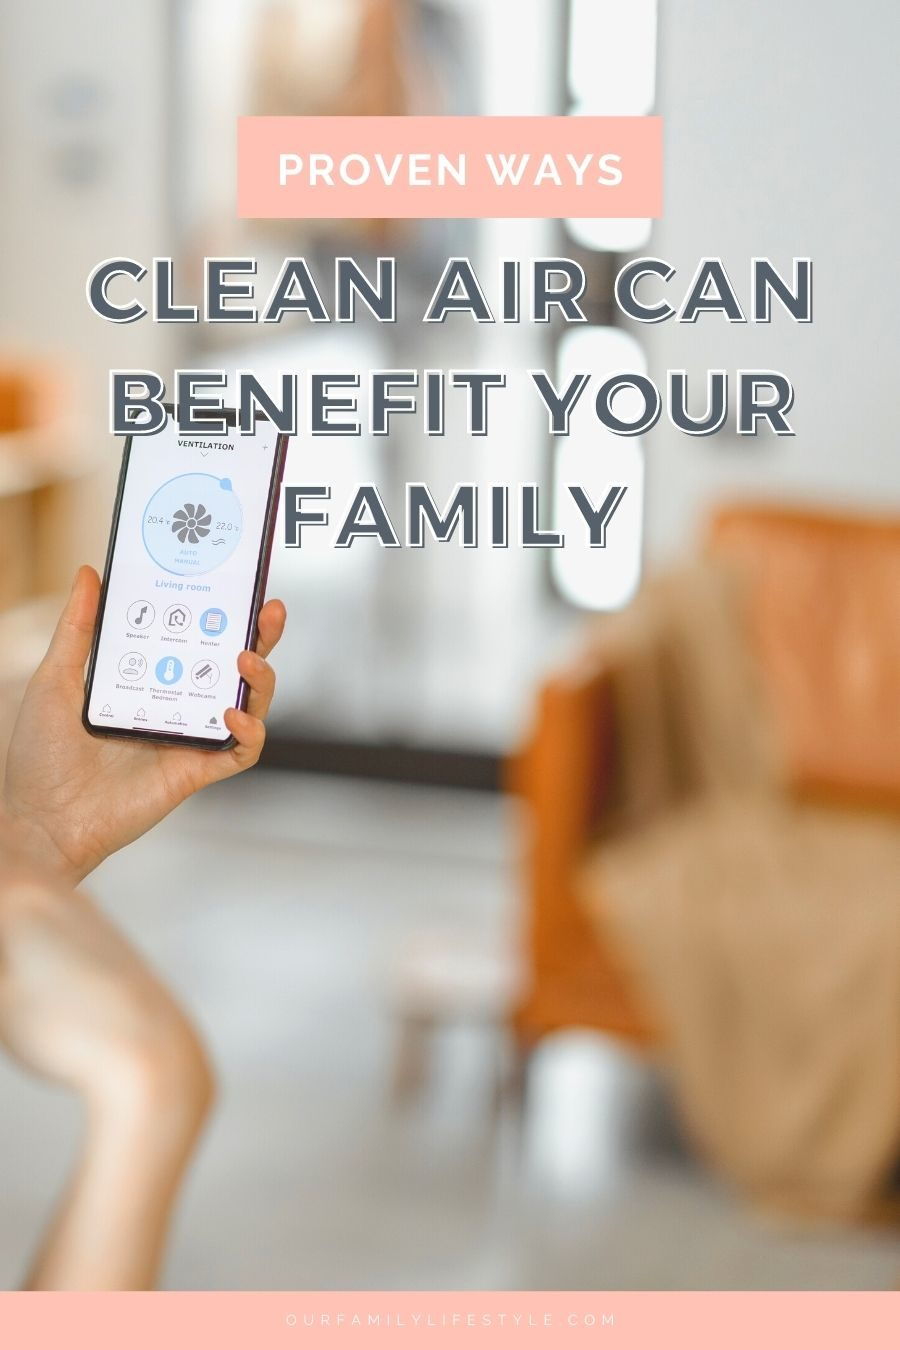 Proven Ways That Clean Air Can Benefit Your Family